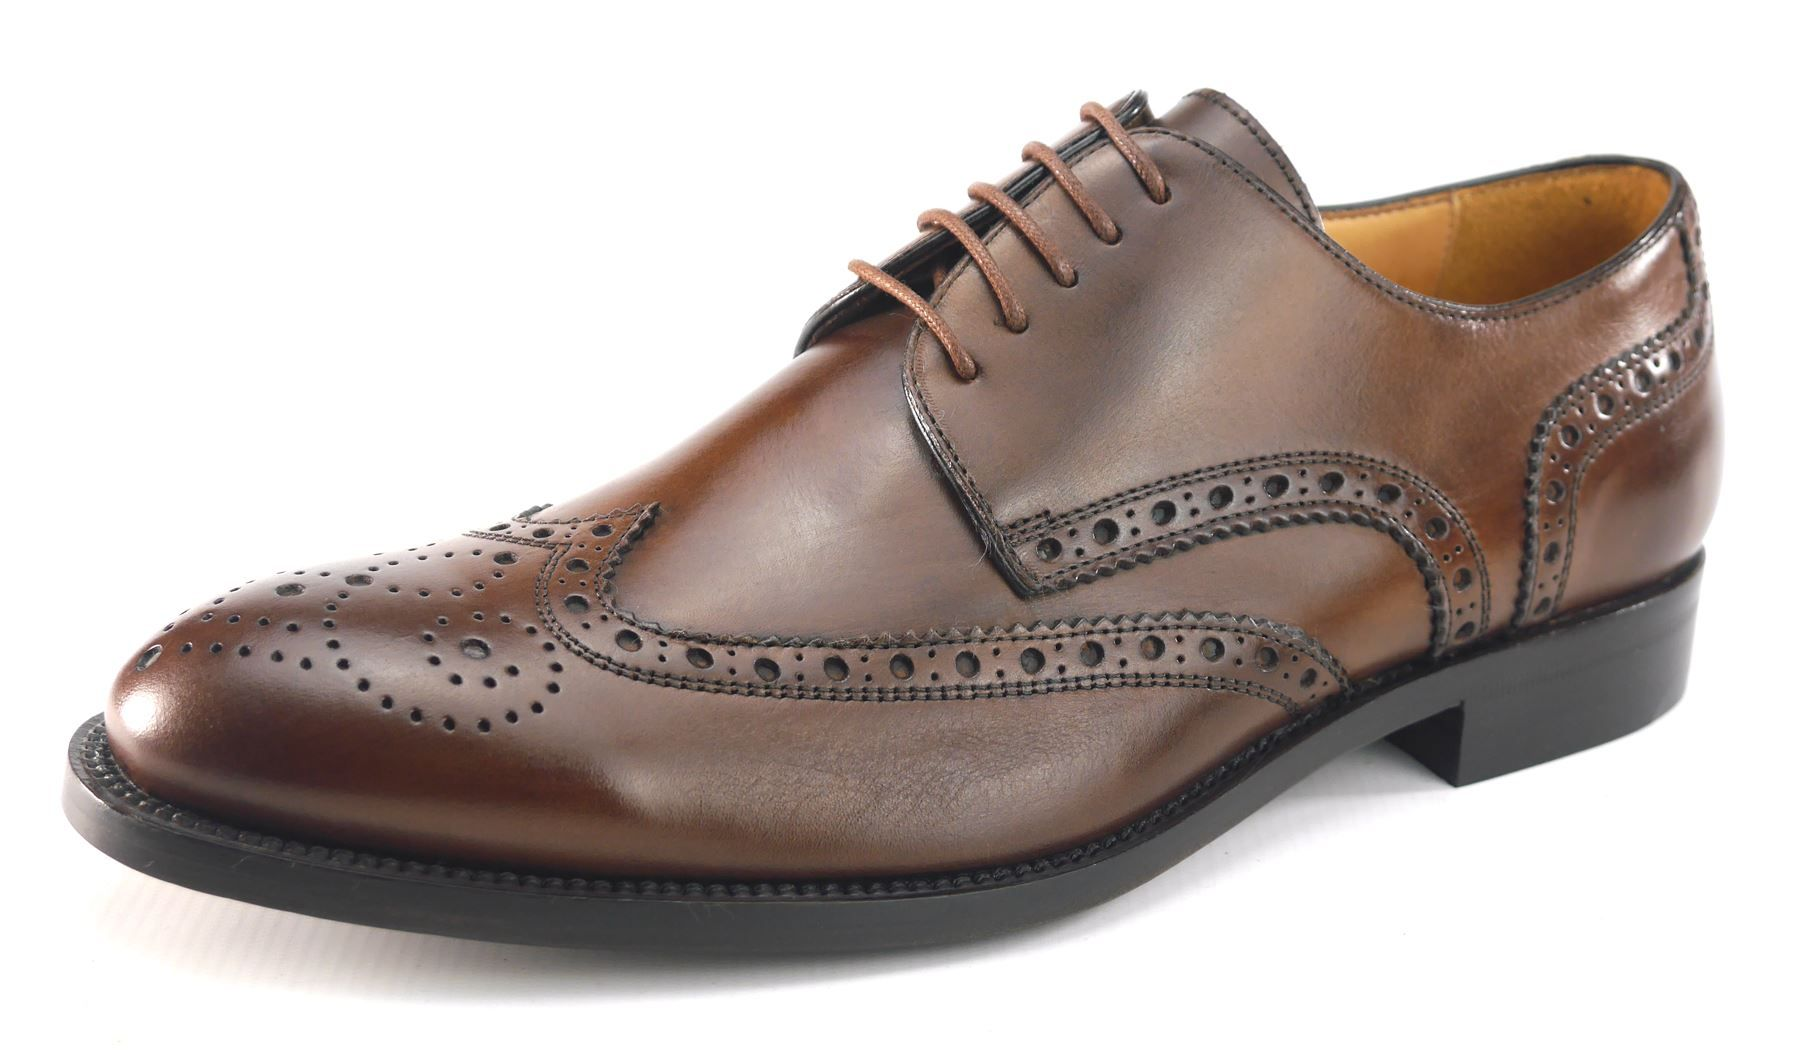 9404f0497ec9 Mercanti Fiorentini Mens Lace Up All Leather Brogue Oxford Cap Brown ...